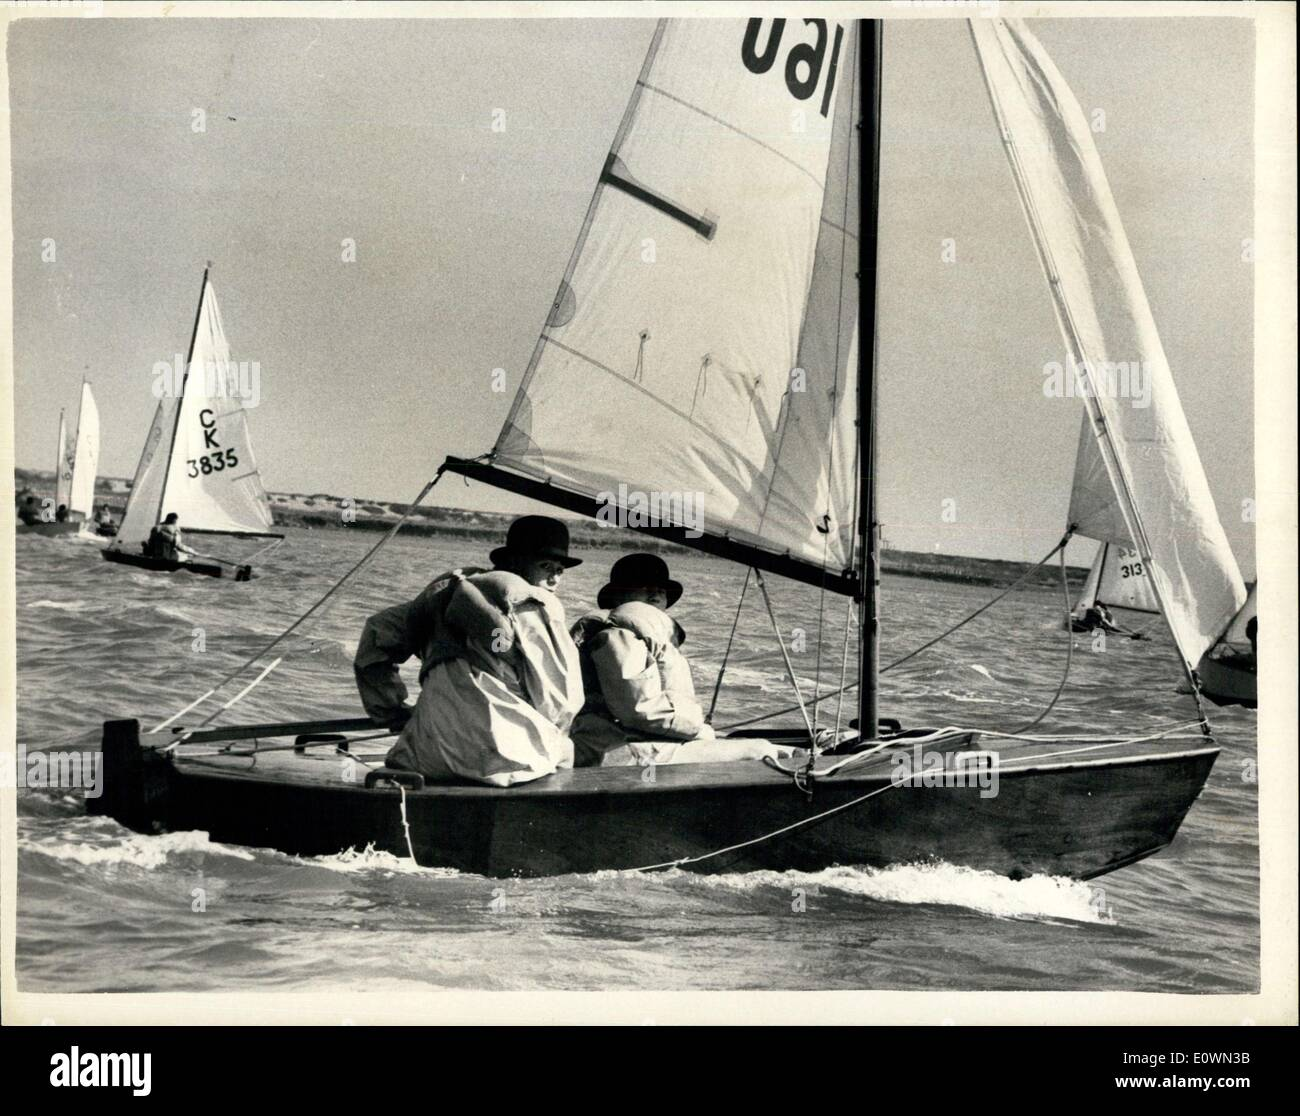 Aug. 19, 1963 - Cadet Week Opens - The Fourteenth International Cadet Class racing dingh week opened at Burnham-on-Crouch today. the Cadets can only be sailed by Persons uder 19 years of age. Photo Shows:- An Unusual Headgear in the form of bowler hats are worn by P. Sharp and D. Foreman of Whitstable, Kent, Seen During the Cadet Class Race. - Stock Image